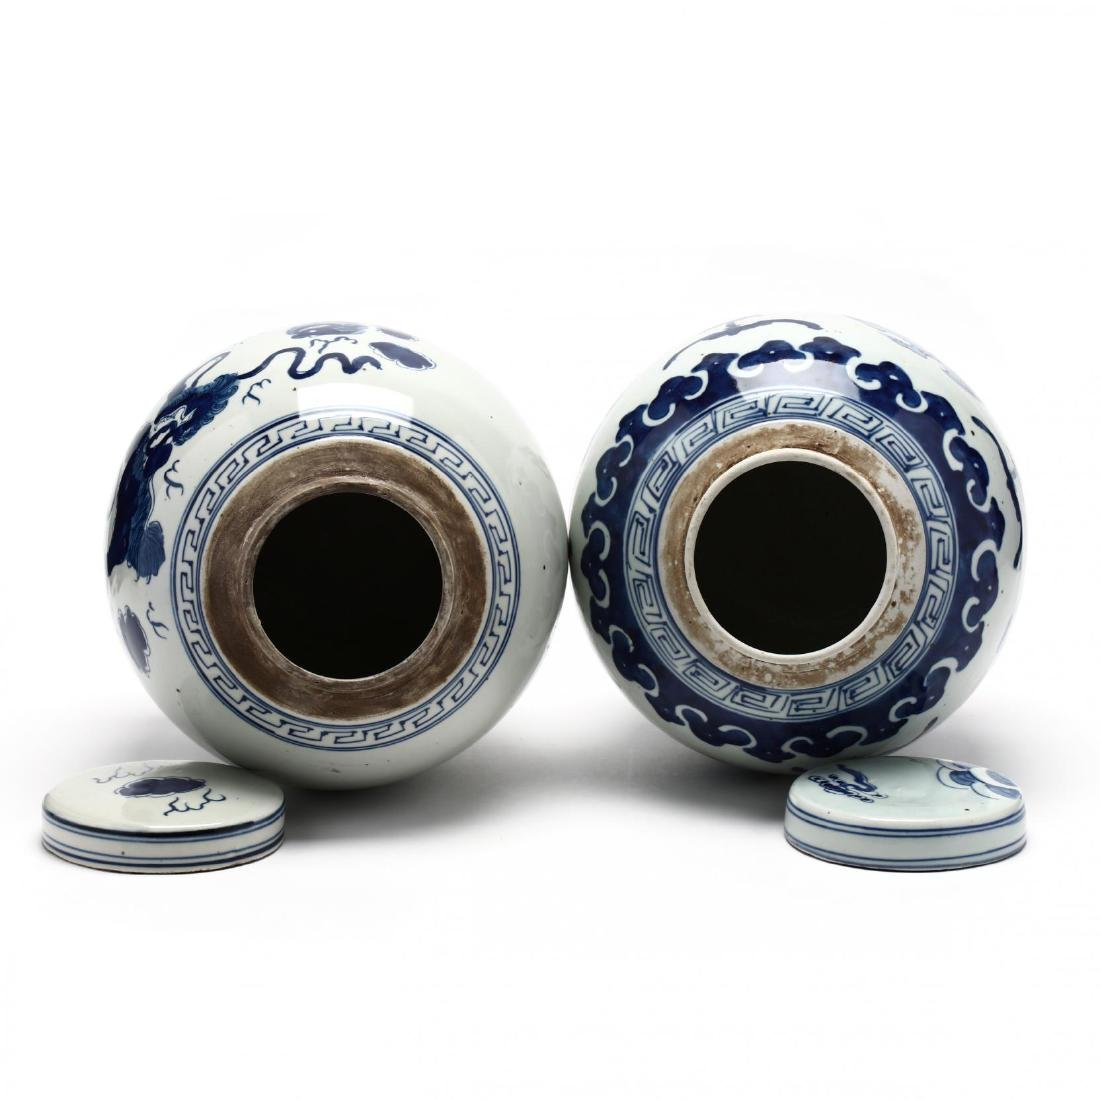 A Matched Pair of Unusual Chinese Porcelain Blue and - 4